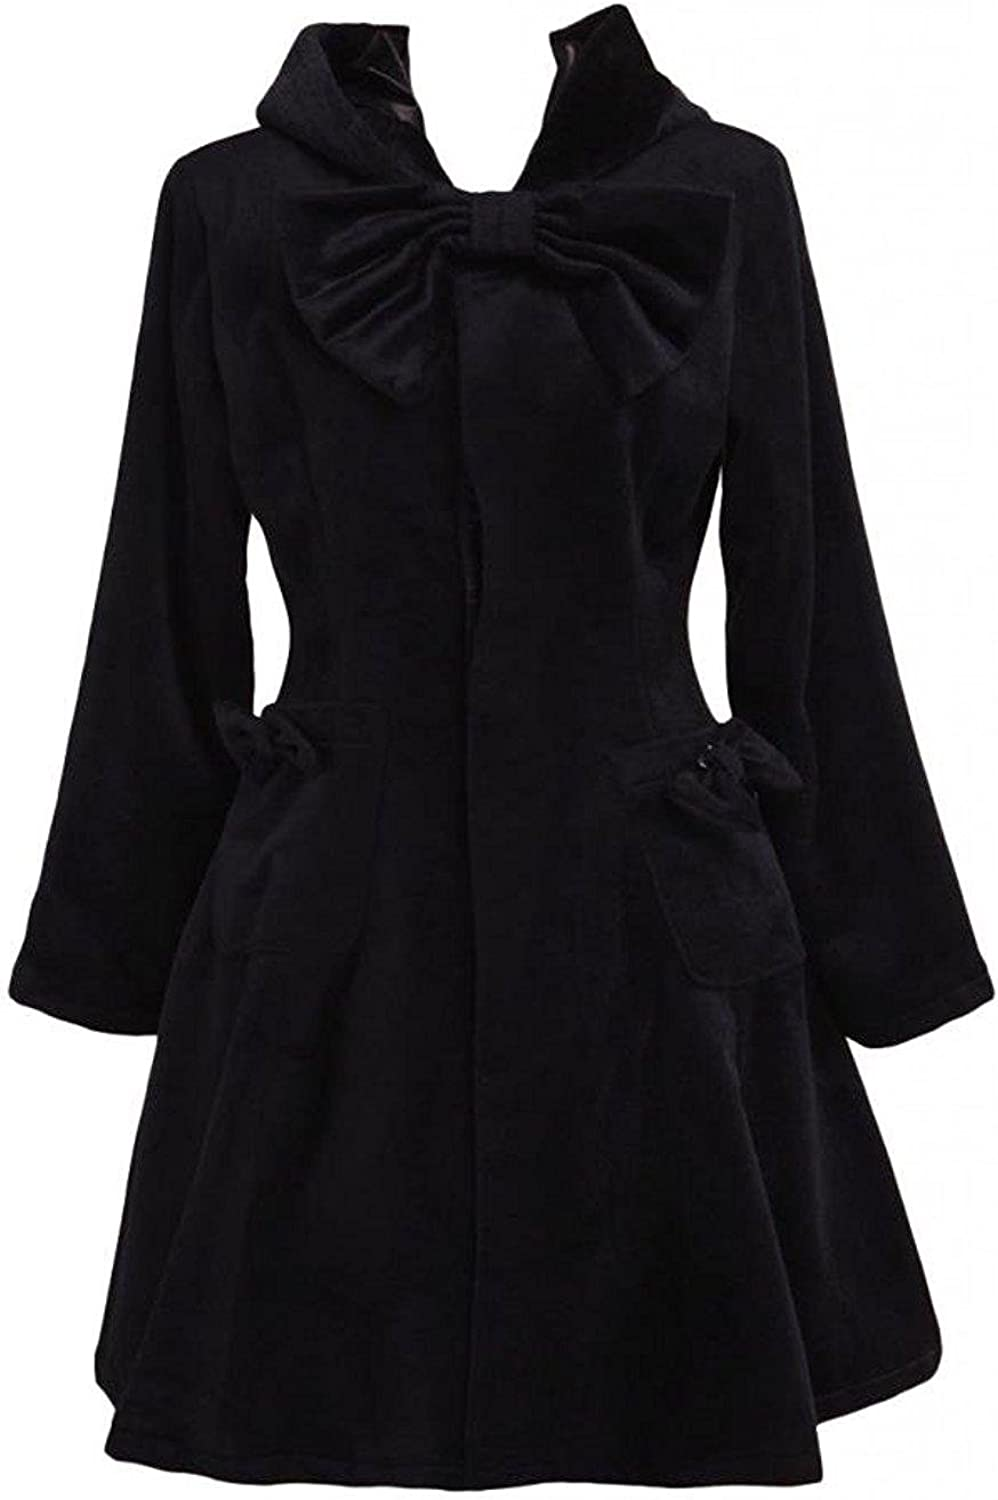 Cemavin Womens Black Wool Bow Long Sleeves Women's Lolita Outfit